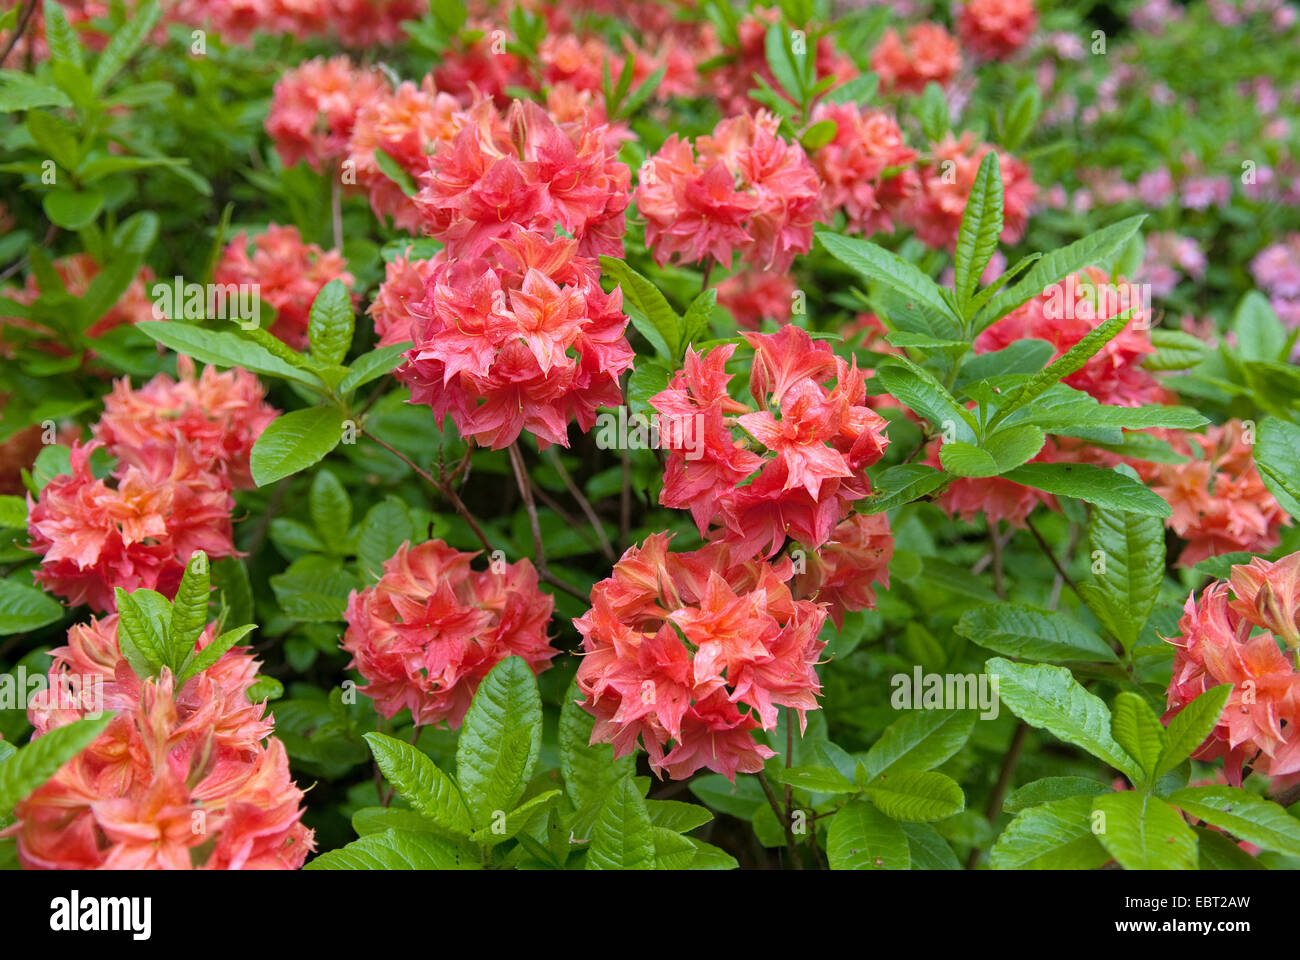 rhododendron (Rhododendron luteum 'Apelles', Rhododendron luteum Apelles), cultivar Apelles - Stock Image